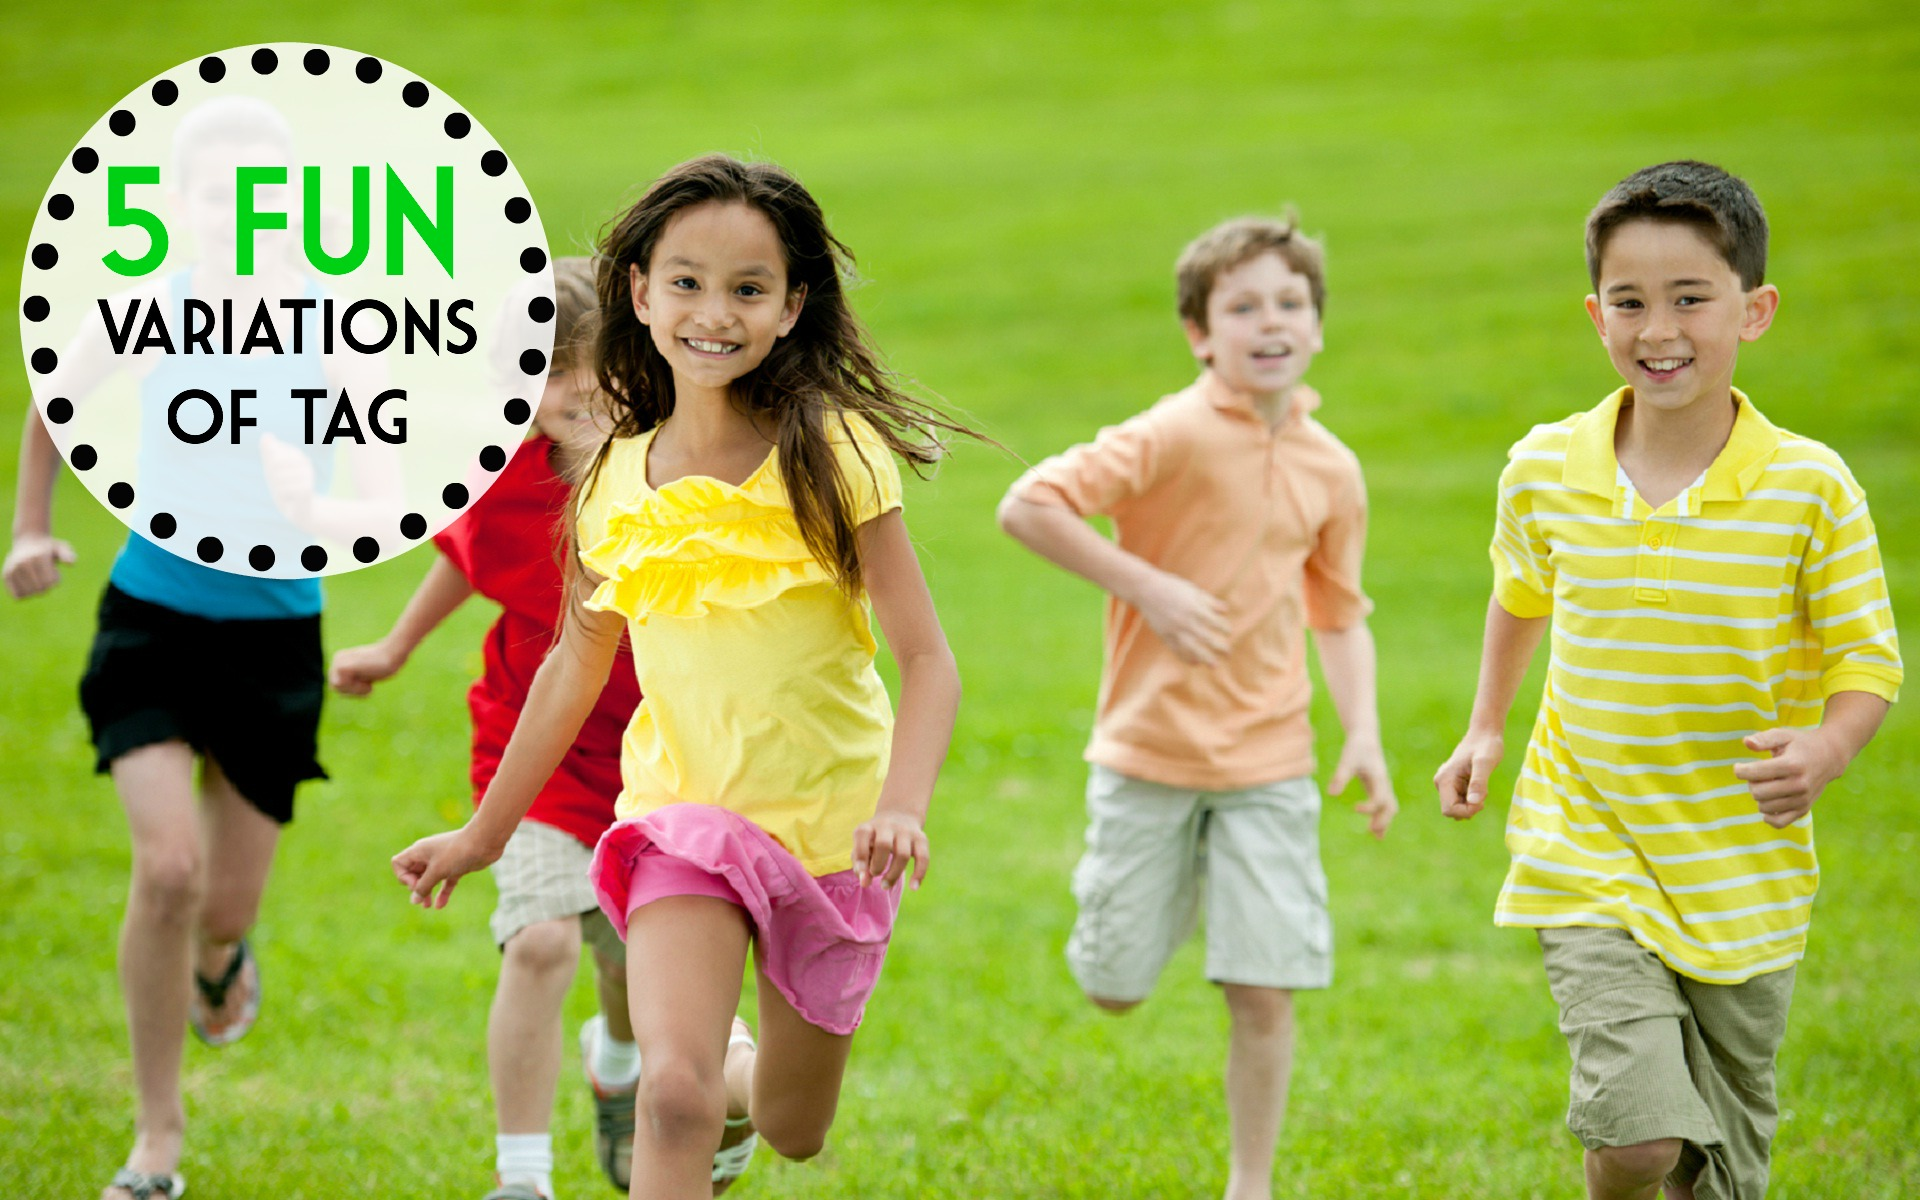 Here are 5 fun, fun variations of the game of tag. You've gotta check them out1